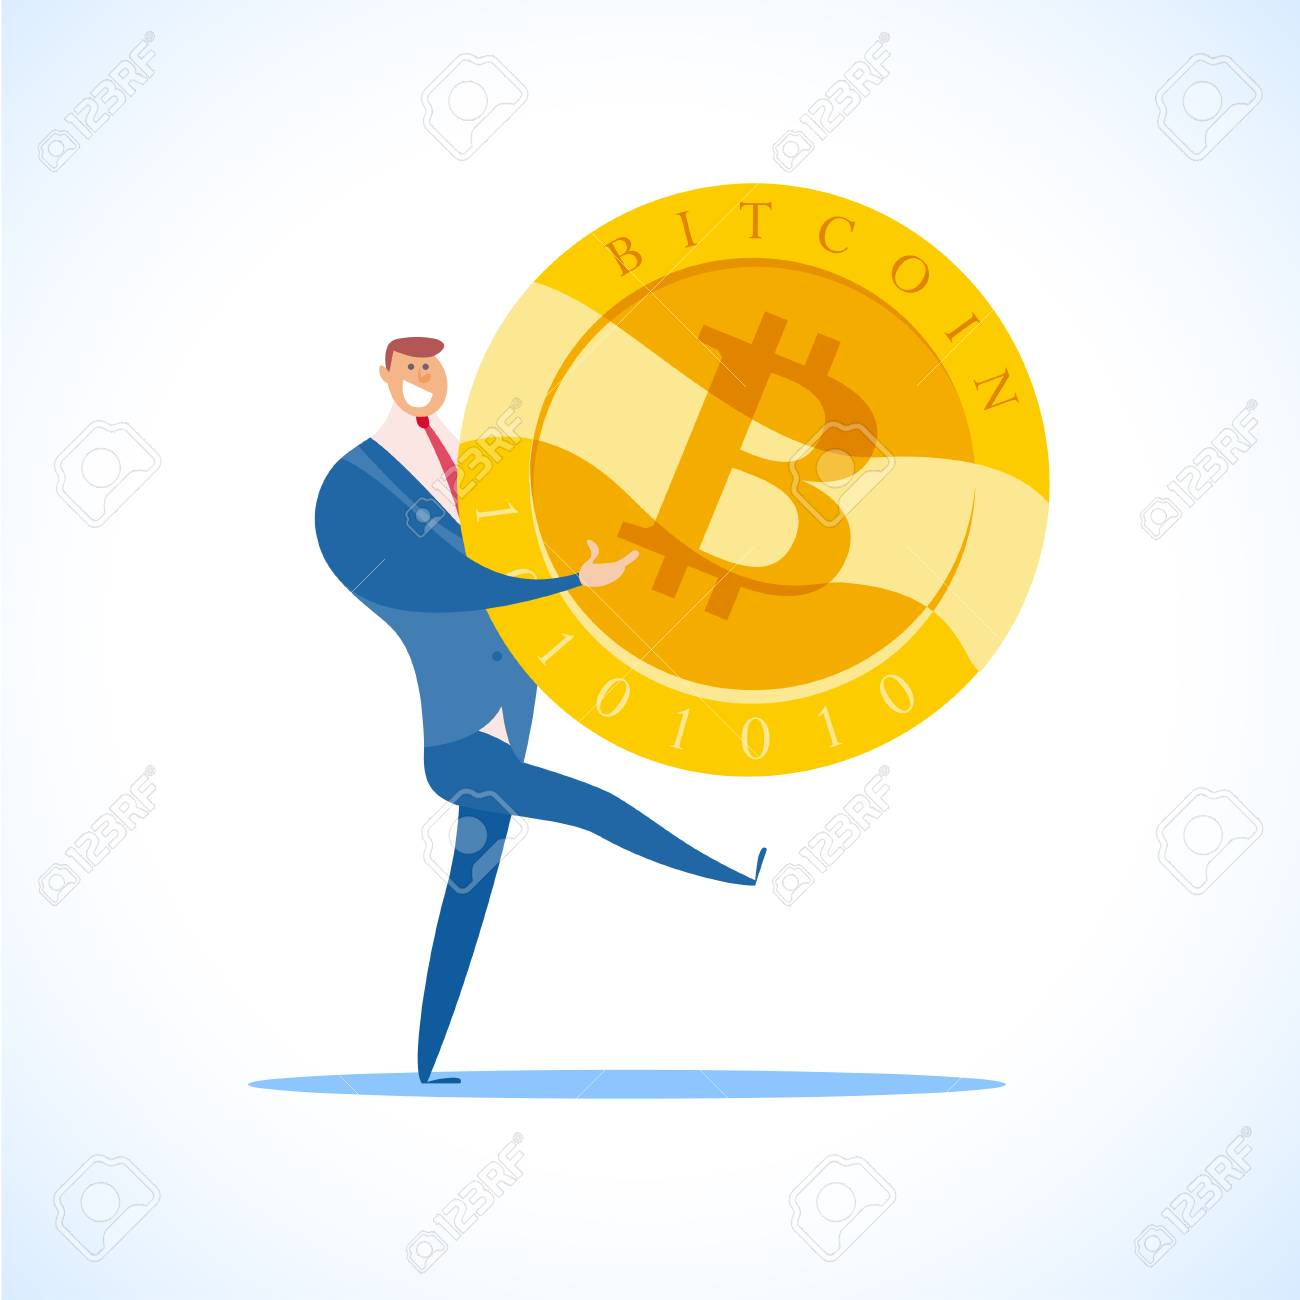 Vector bitcoin and successful businessman flat illustration isolated on white background. Cryptocurrency golden symbol. Digital money emblem, golden coin with bitcoin symbol design. - 89540281